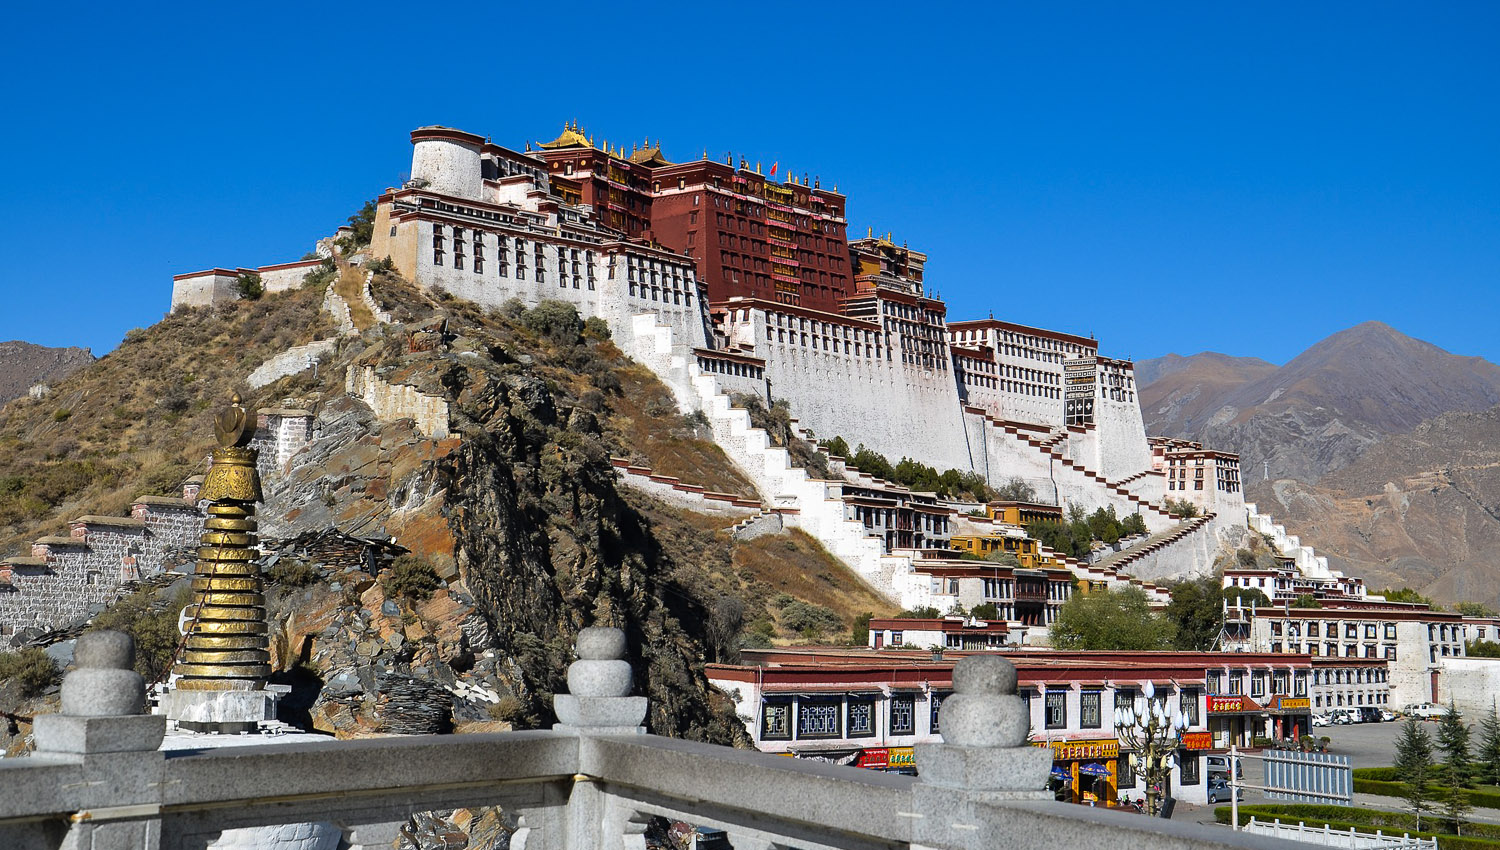 The iconic Potala Palace in Lhasa, Tibet.   Image:    简体中文